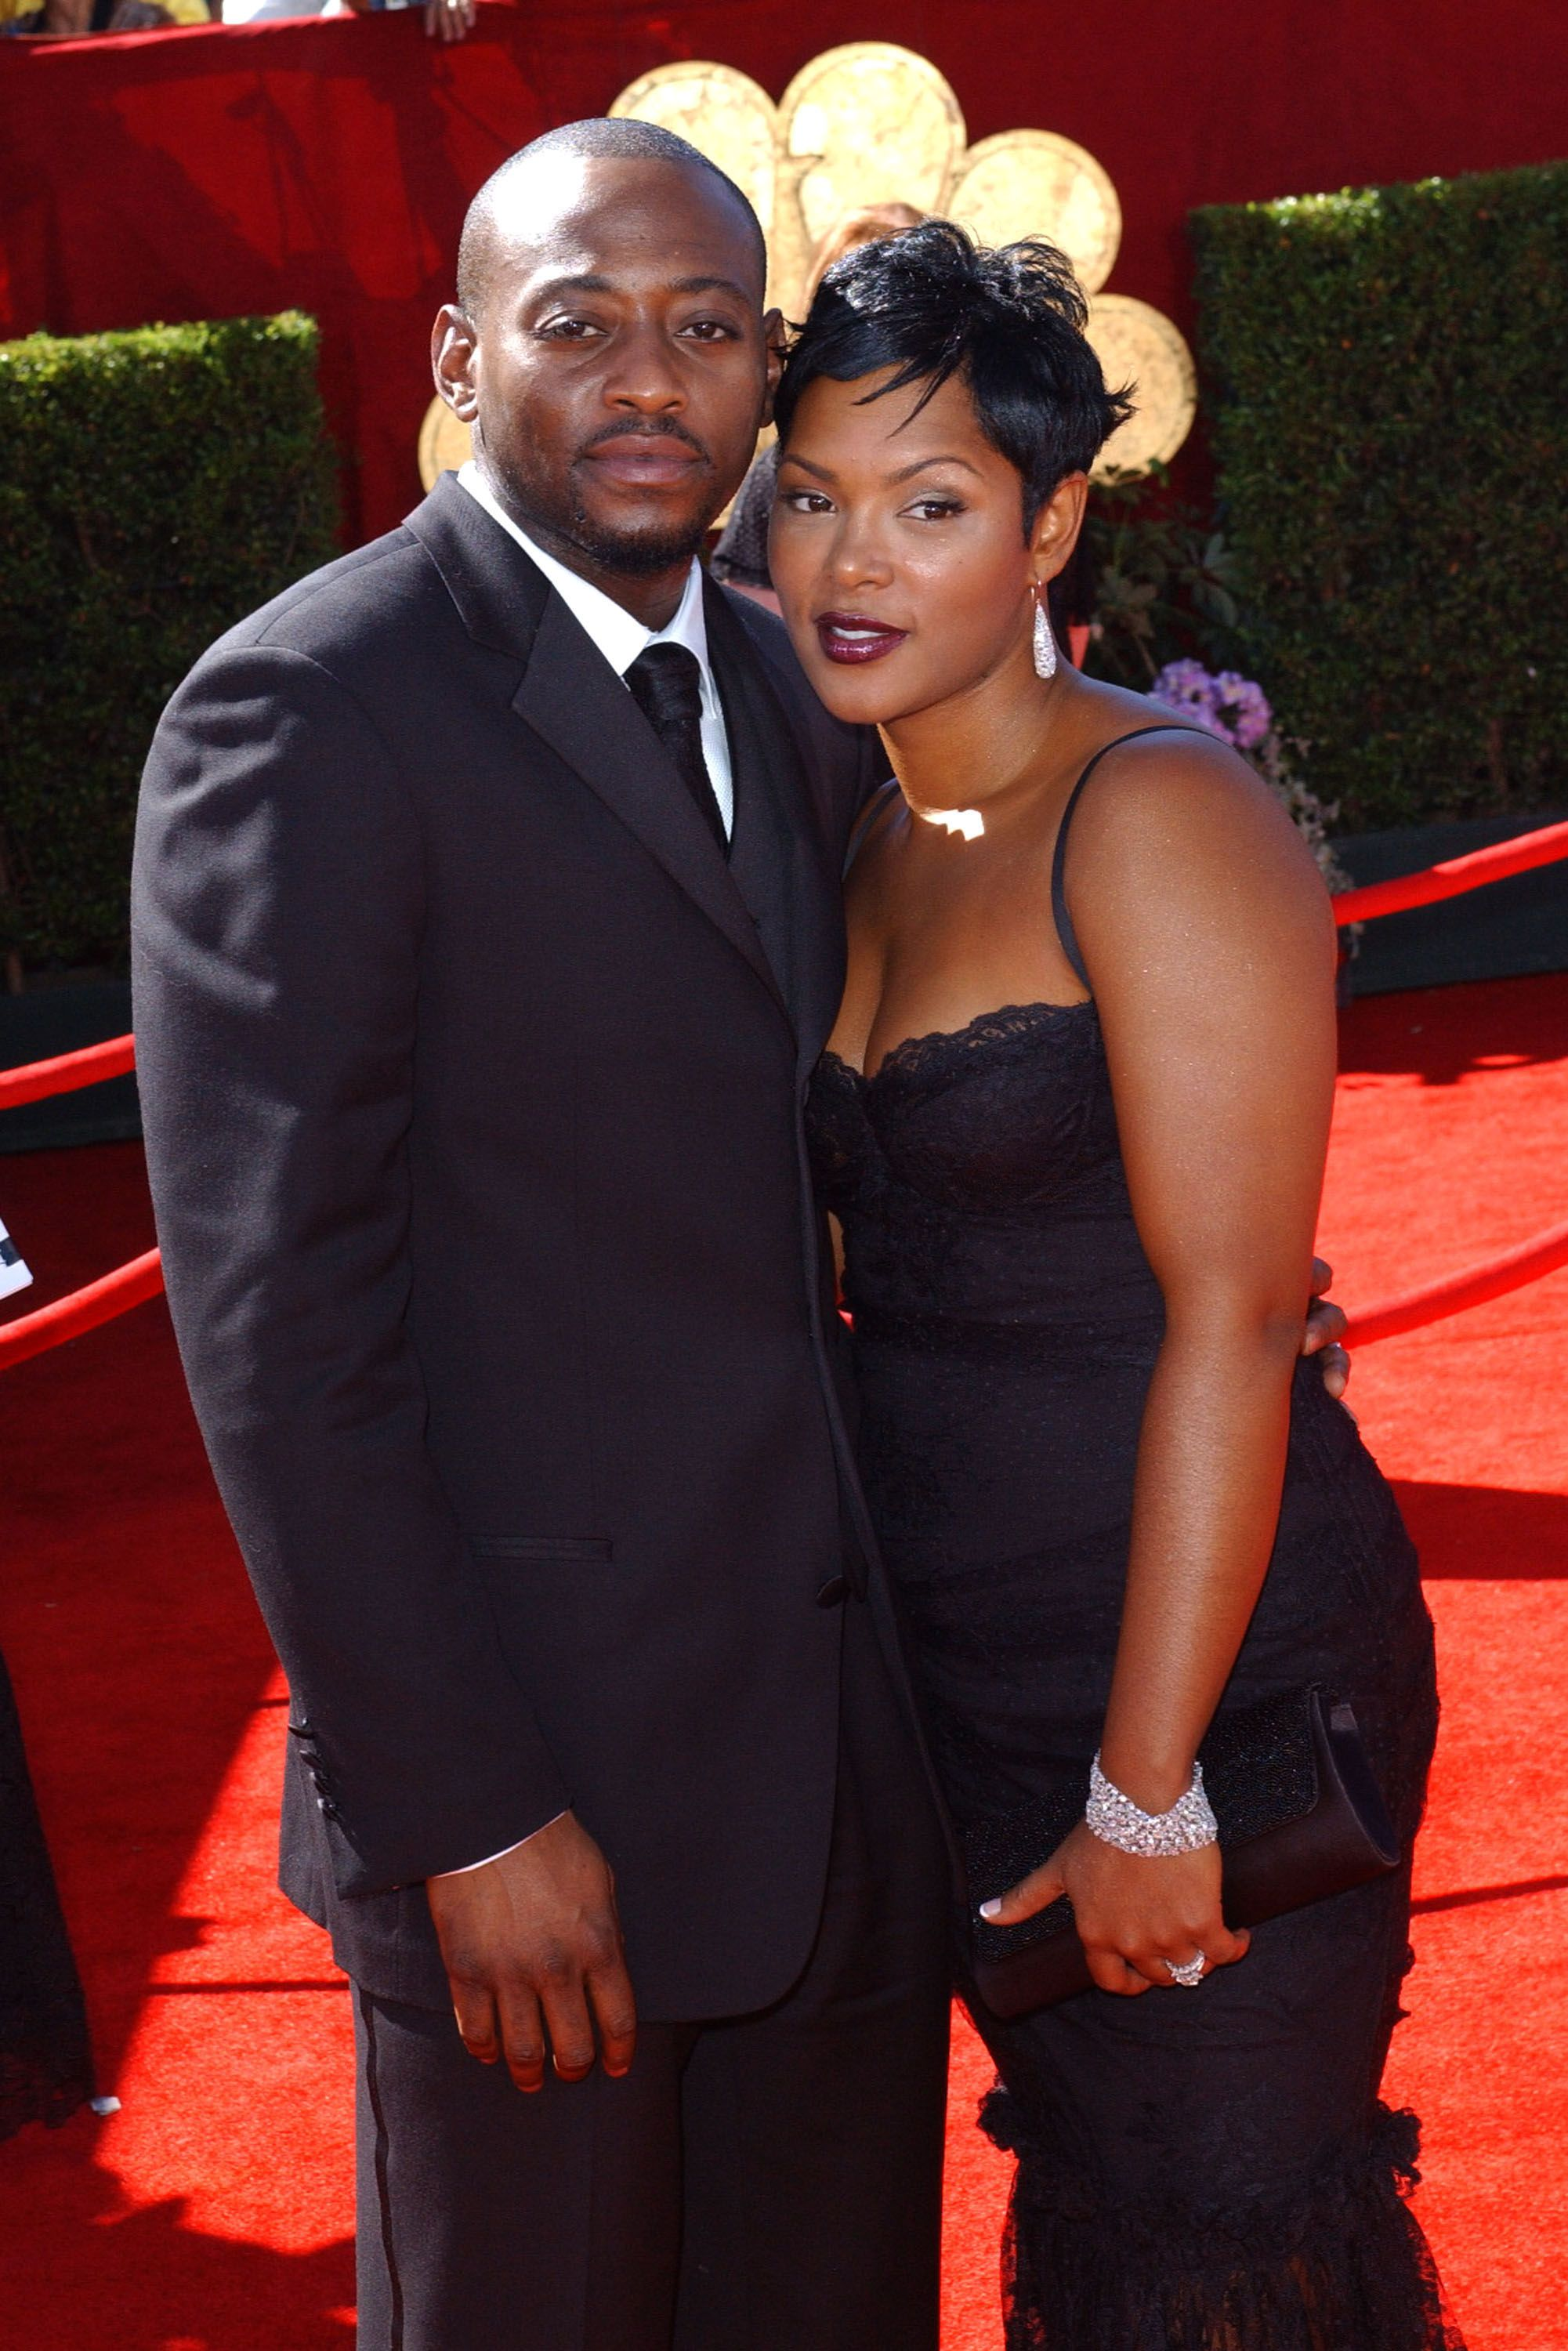 Omar Epps and wife Keisha Epps at the Shrine Auditorium in August 2006 | Photo: Getty Images